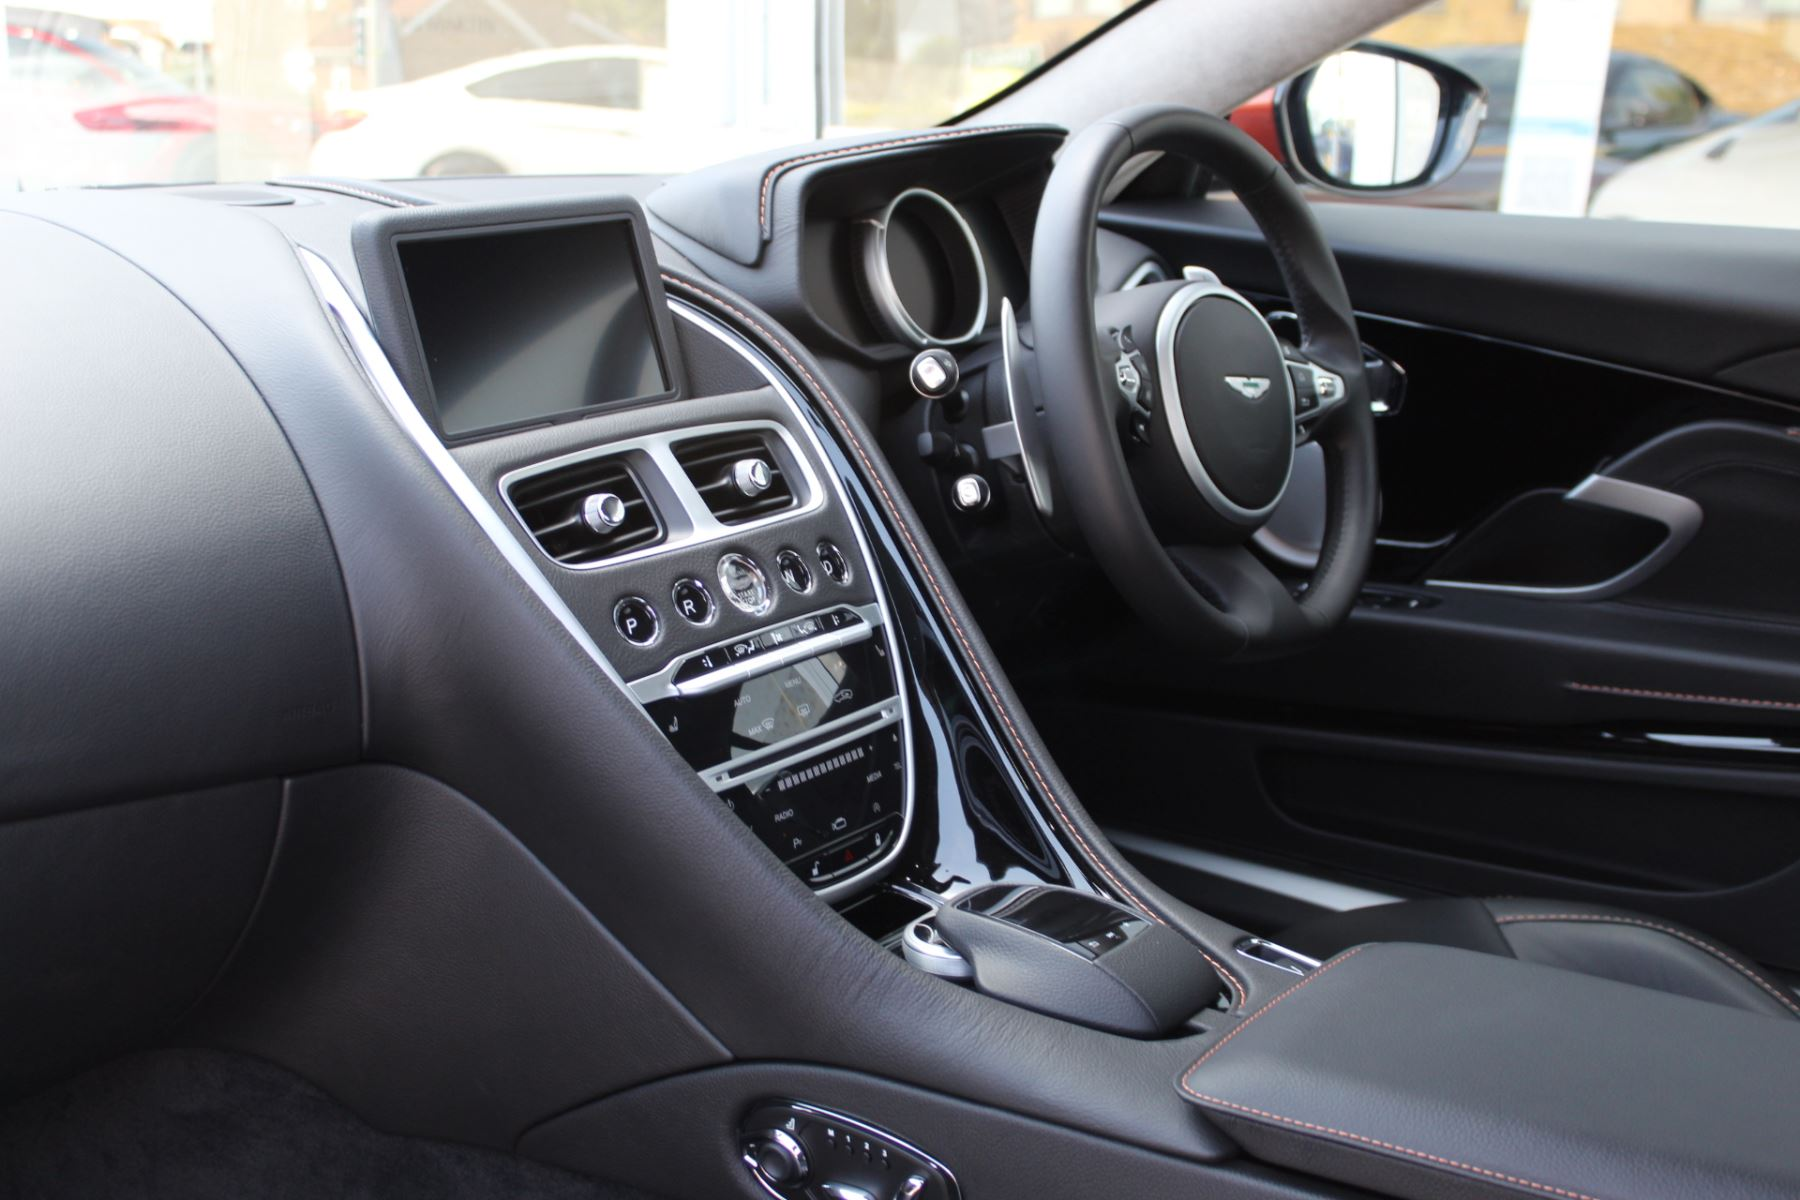 Aston Martin DB11 V12 2dr Touchtronic  Rare Launch Edition, 1 Owner  image 16